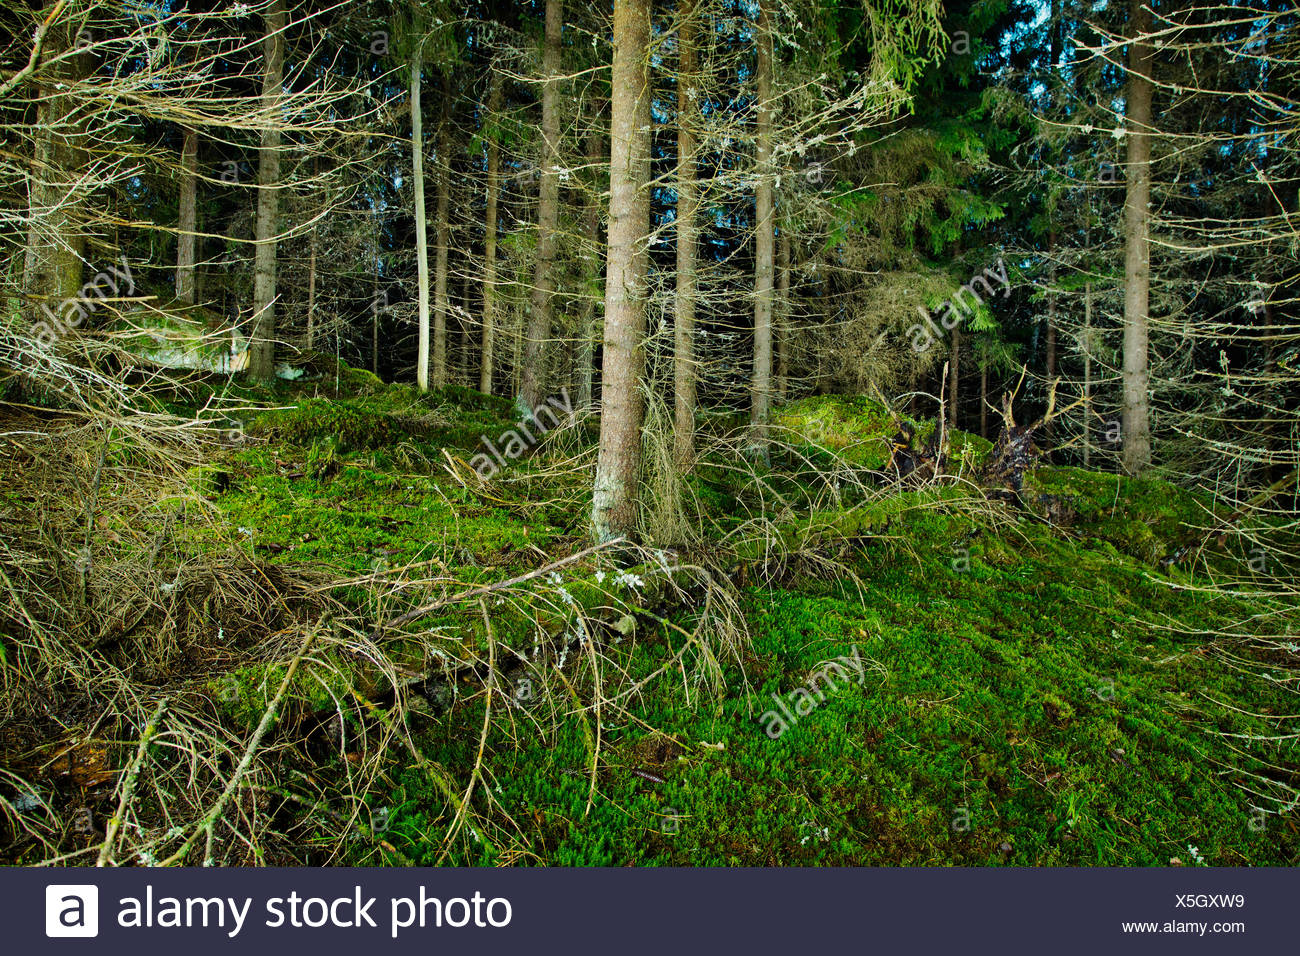 Finland, Paijat-Hame, Fallen tree in spruce forest - Stock Image